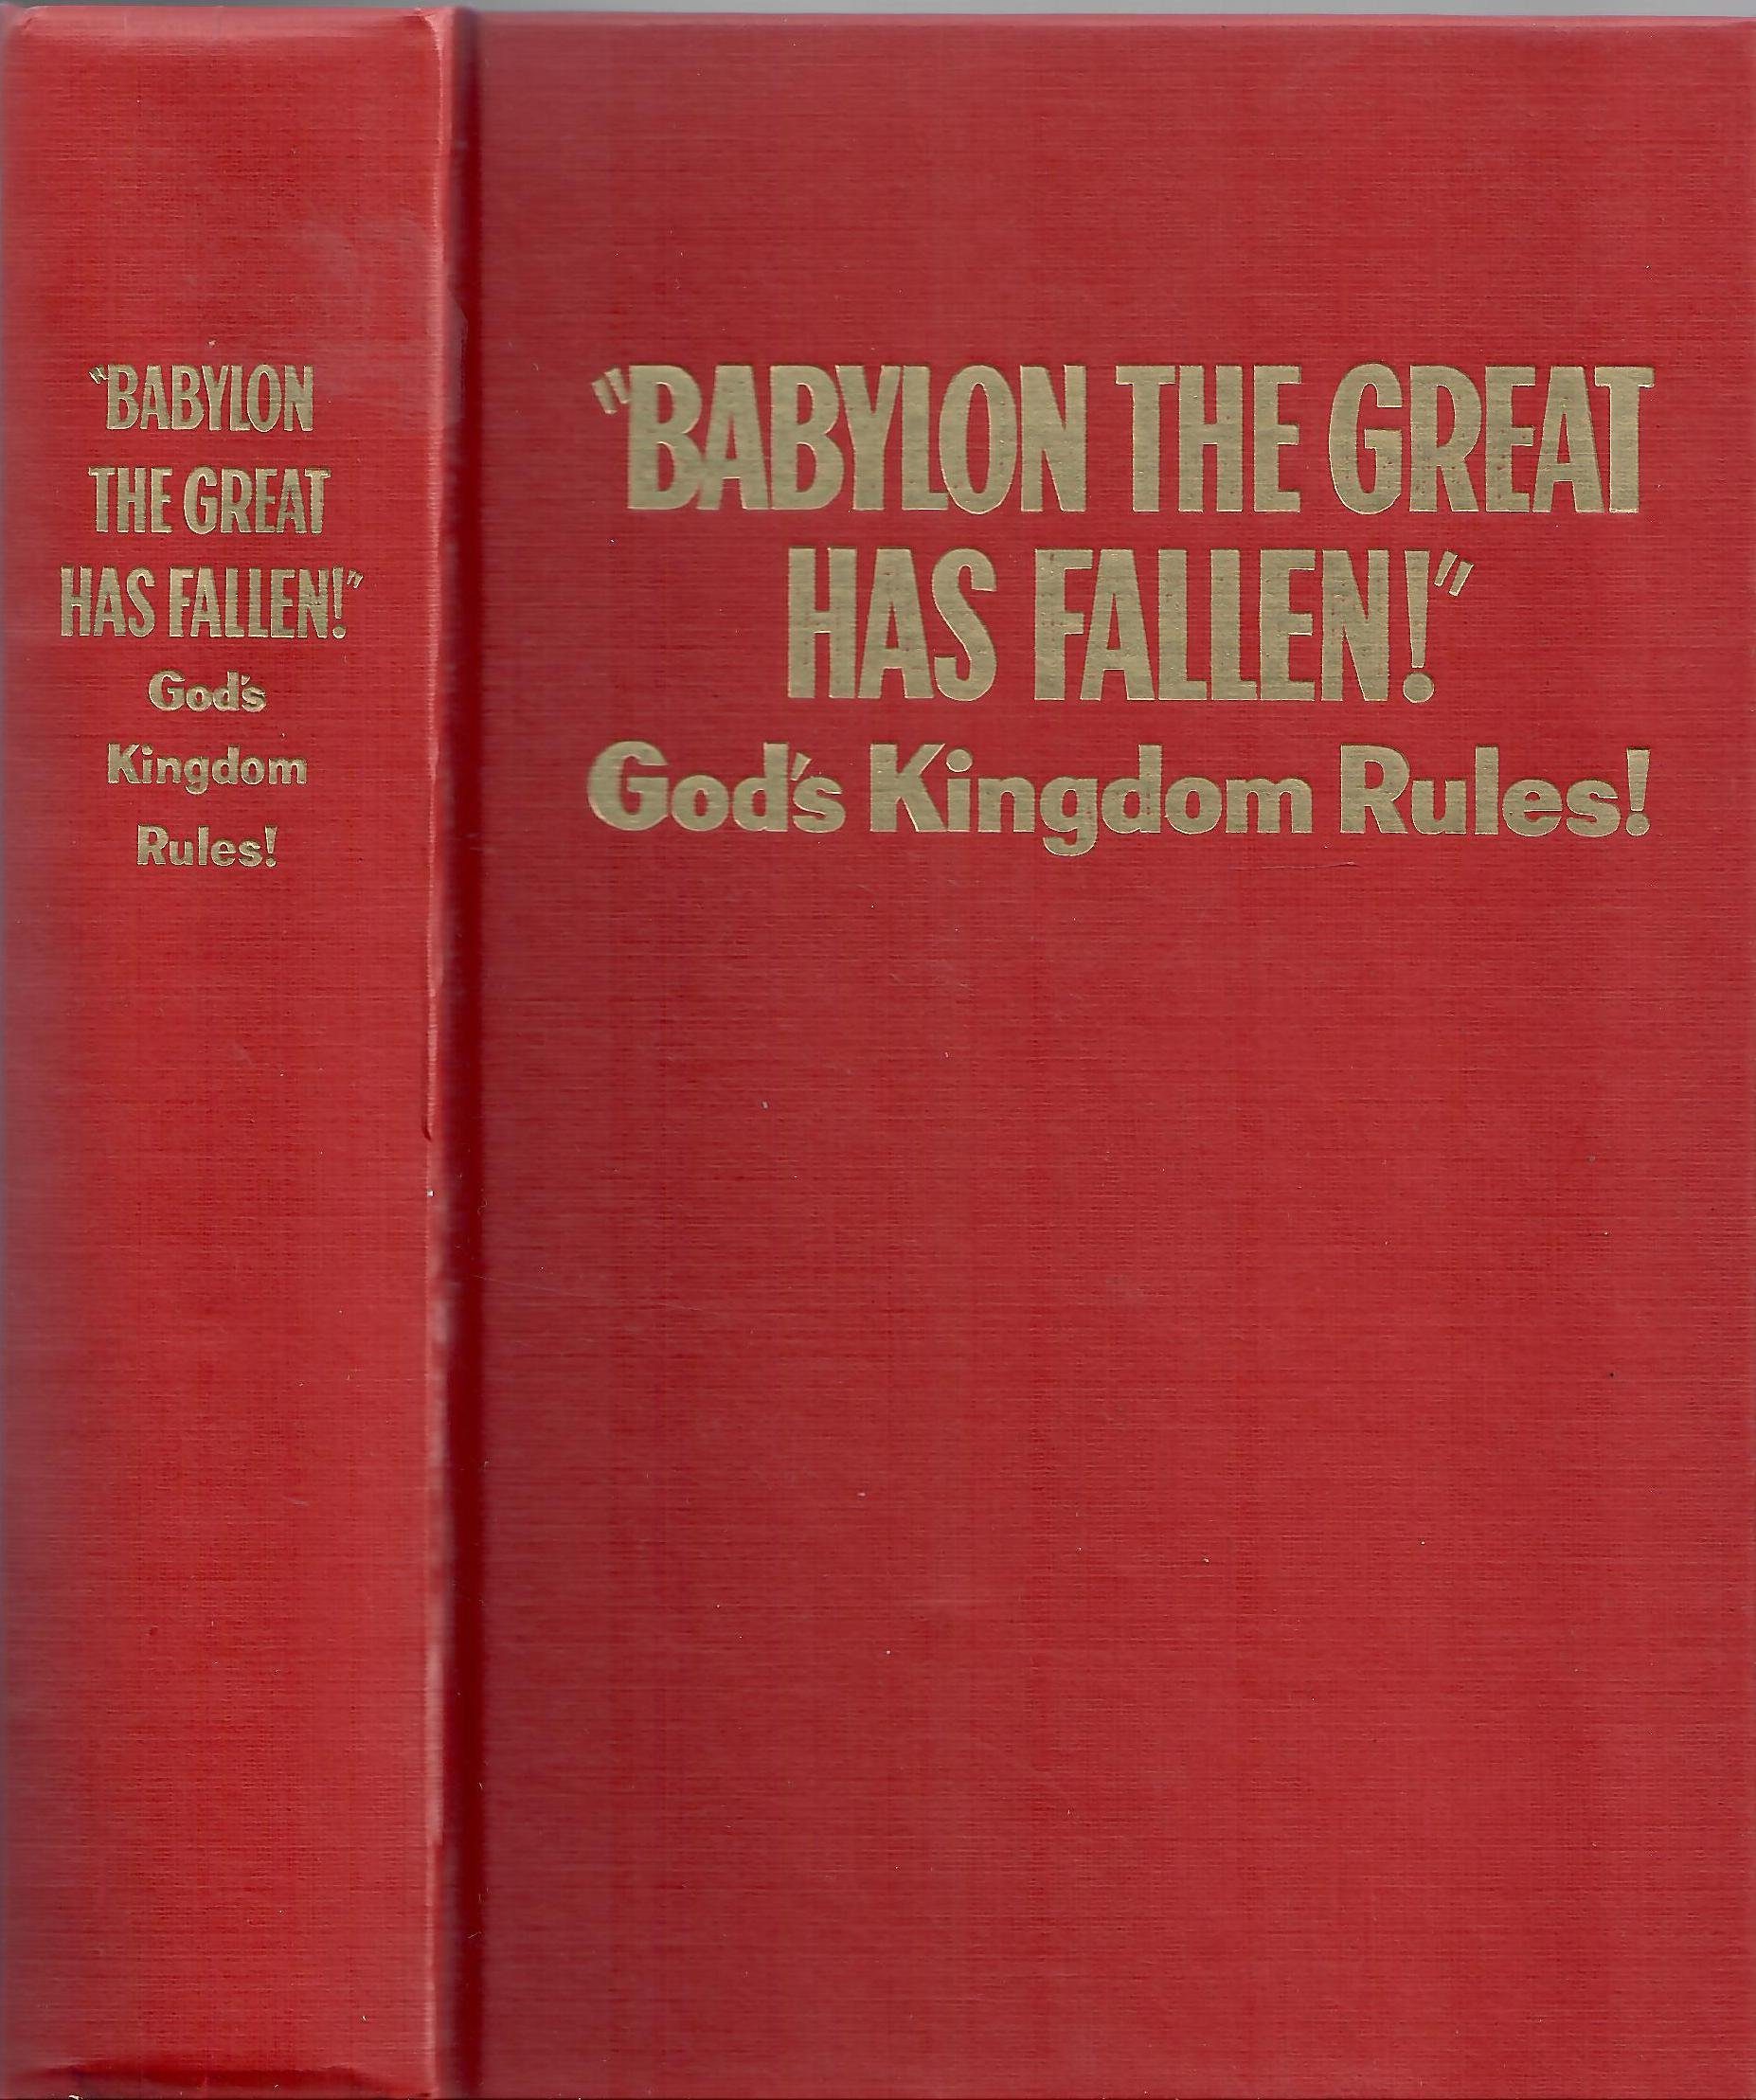 """""""Babylon the Great Has Fallen!"""" God's Kingdom Rules!: Watch Tower Bible &  Tract Society: Amazon.com: Books"""